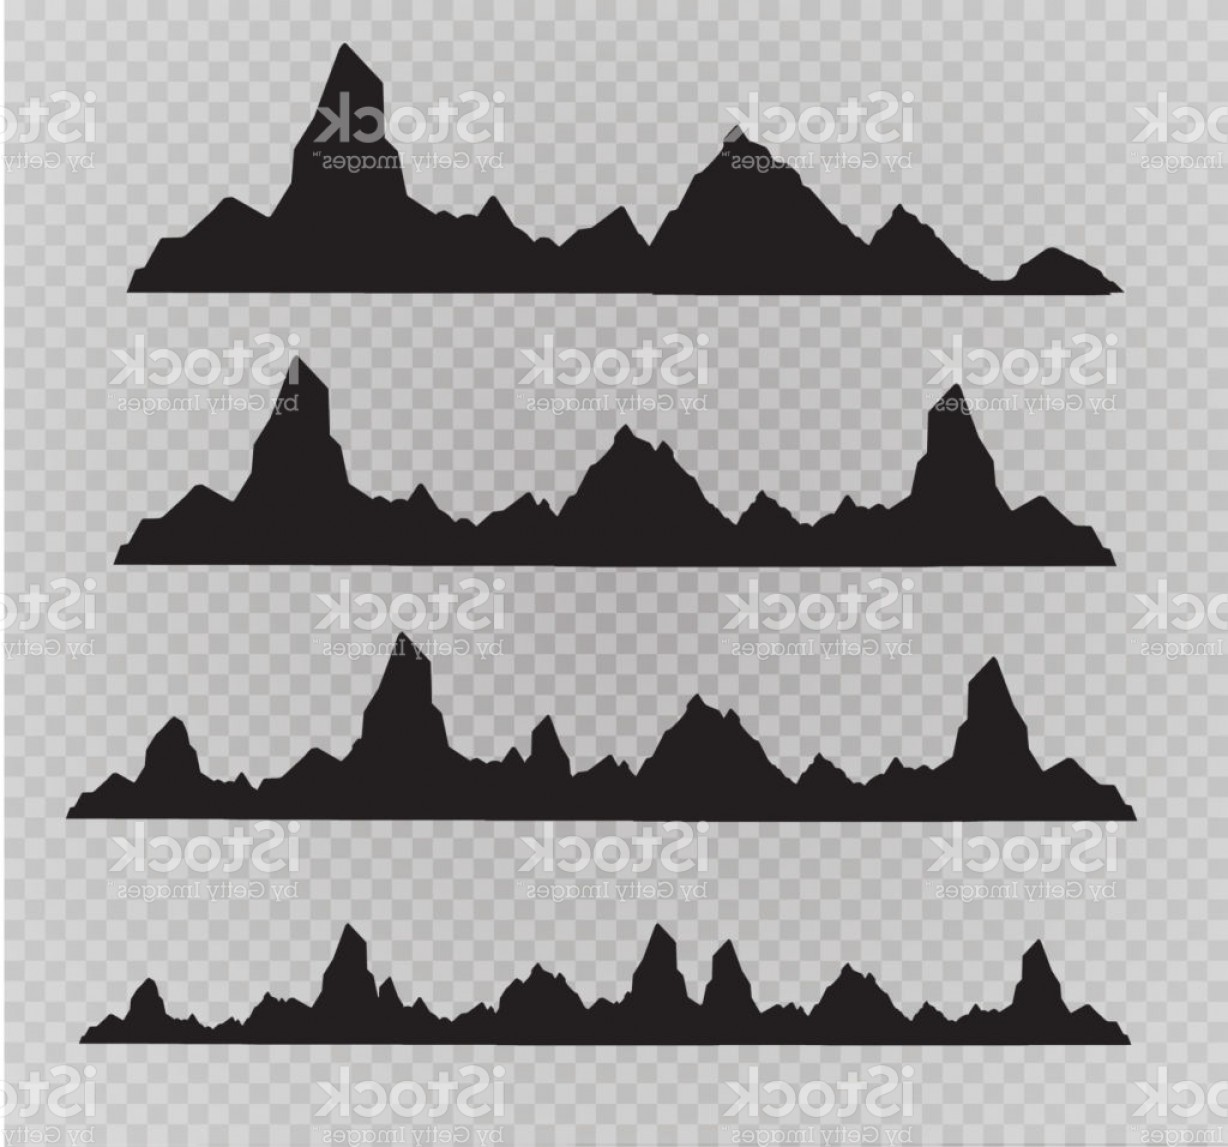 White Mountain Silhouette Vector Free: Set Of Black And White Mountain Silhouettes Background Border Of Rocky Mountains Gm